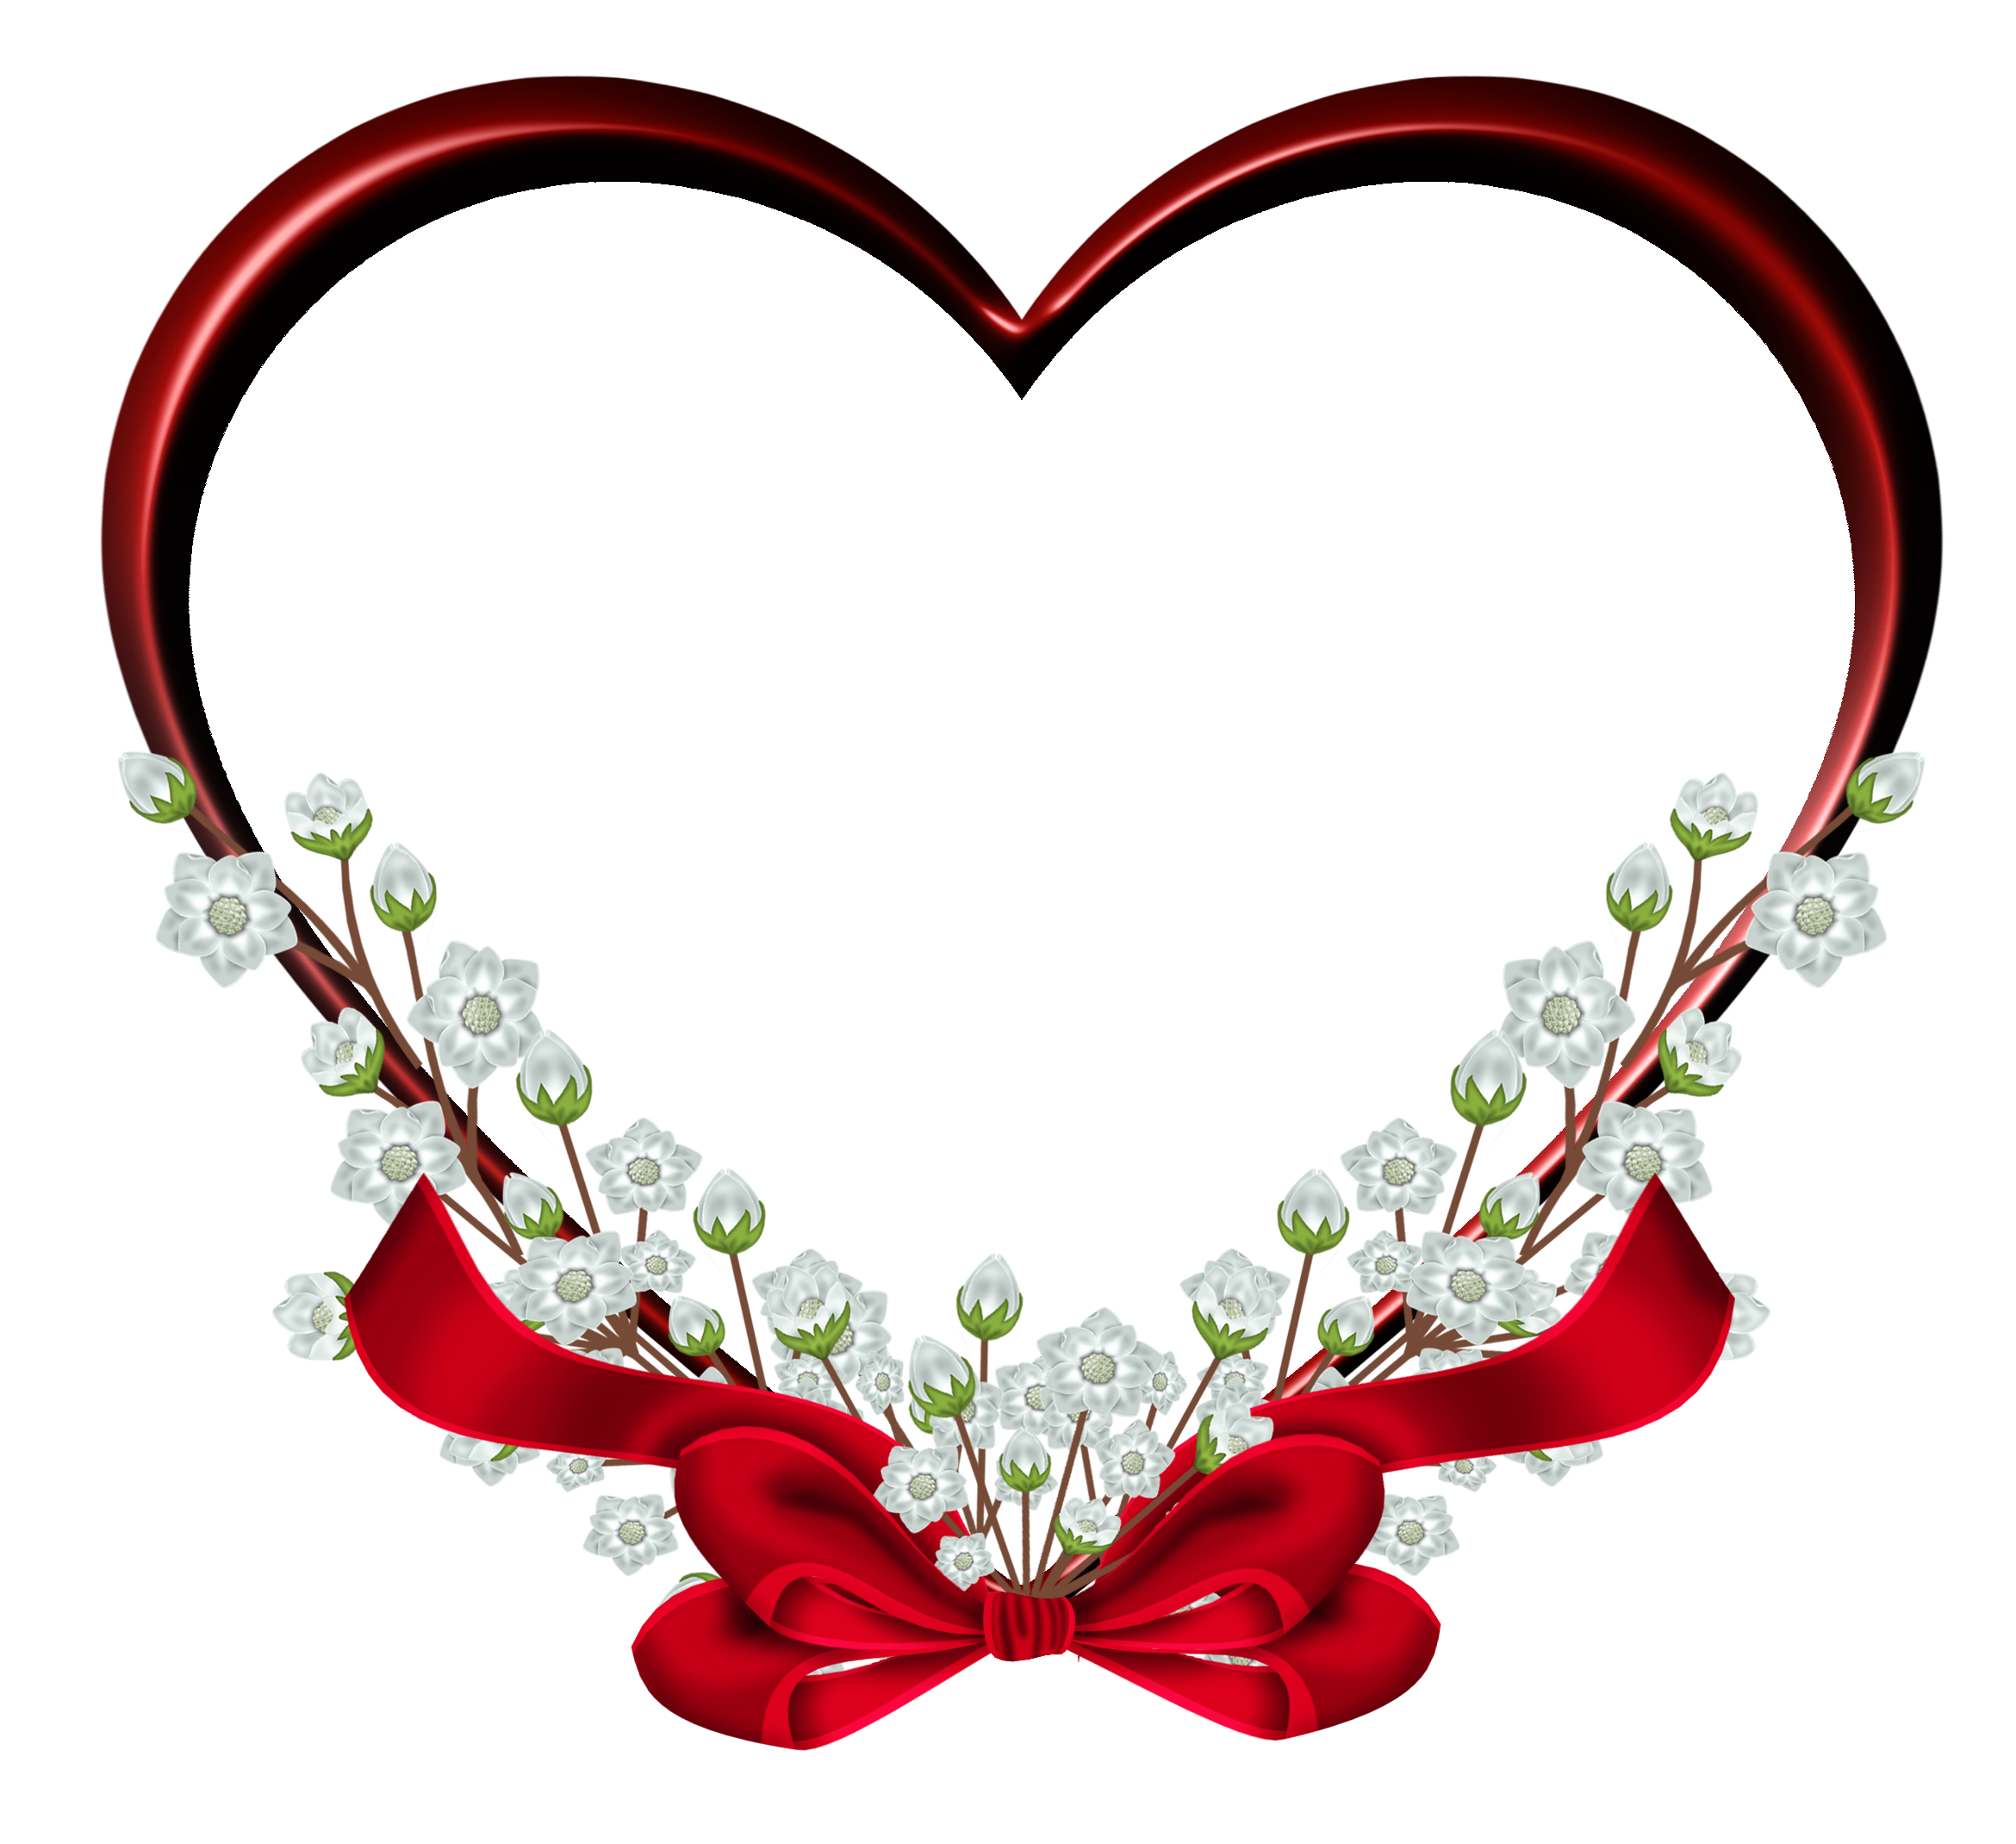 Pin by Janett Cepeda on Transparent Red Heart Frame Decor.